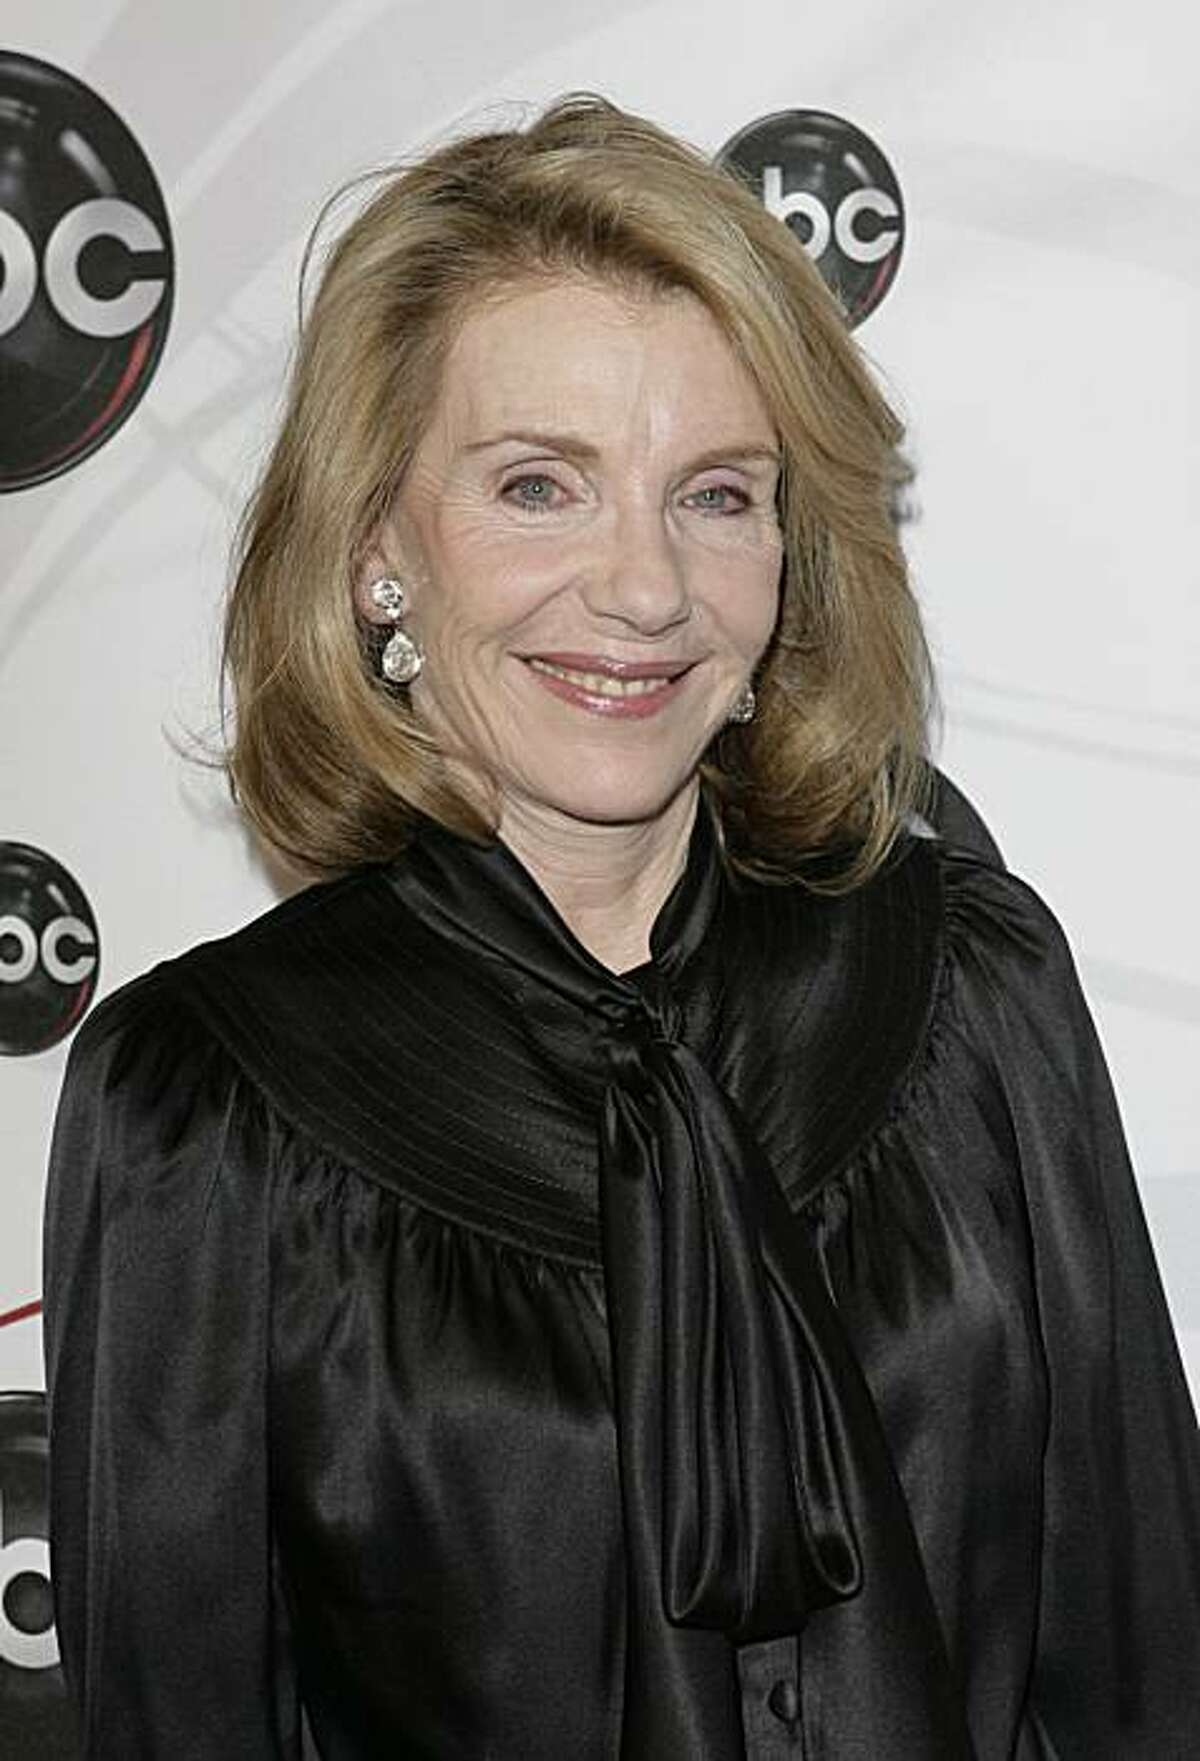 """FILE - In this May 15, 2007 file photo, Jill Clayburgh, star of """"Dirty Sexy Money"""" poses for photographers on the red carpet during the arrivals of ABC's 2007-2008 preview in New York. In one of her final roles Jill Clayburgh plays the mom of charismaticViagra salesman Jamie Reidy (Jake Gyllenhaal) in the romantic comedy """"Love and Other Drugs."""""""